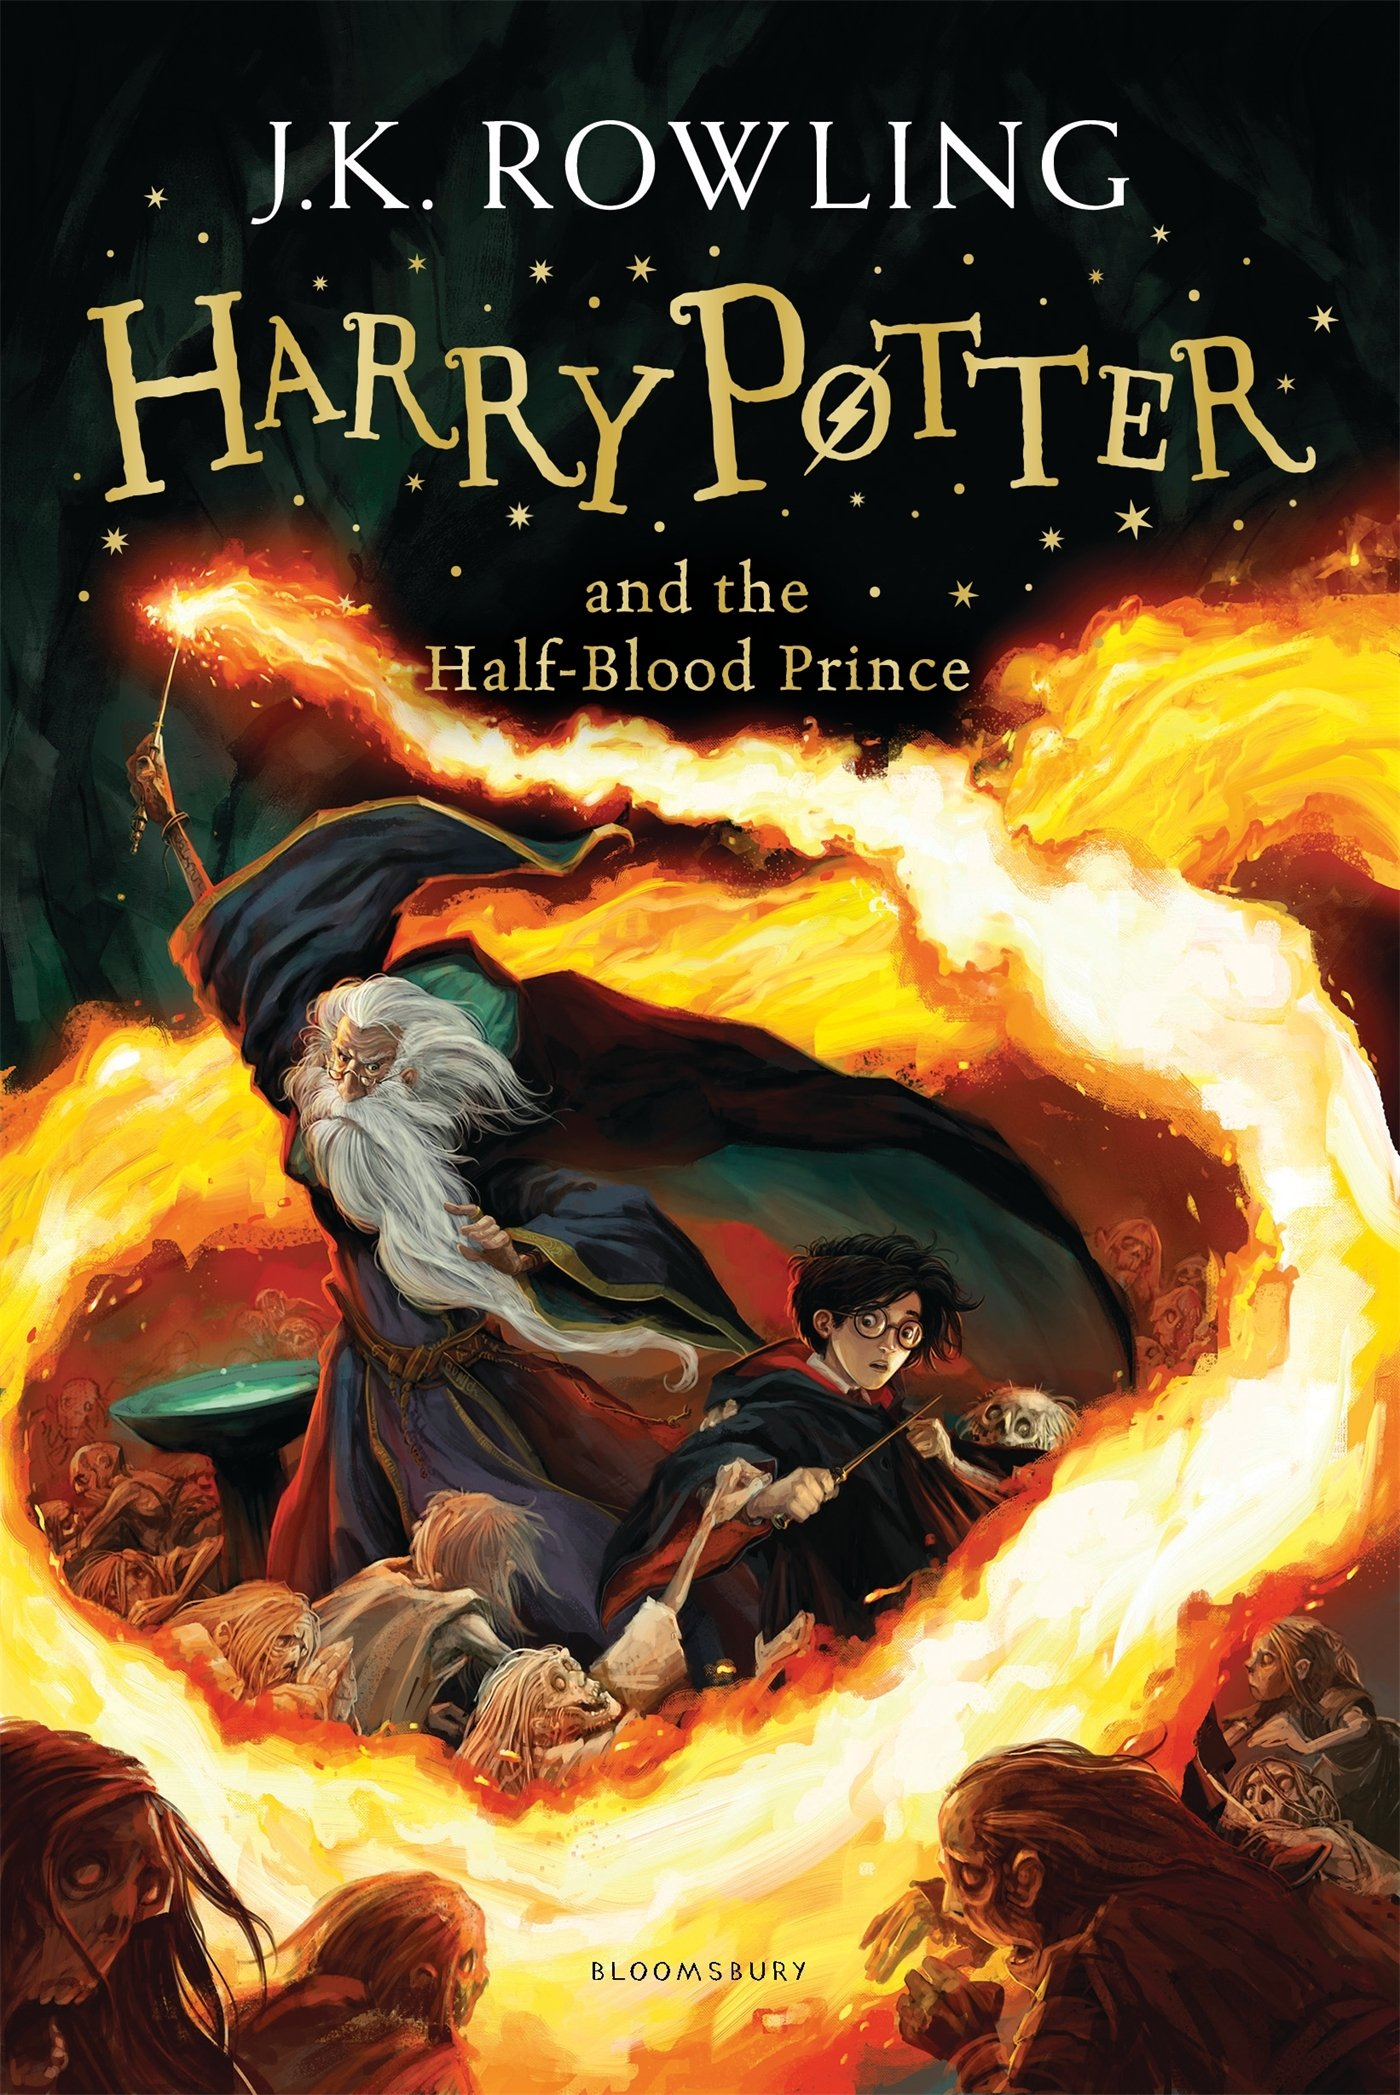 Harry Potter and the Half-Blood Prince - one of the top 10 translated books in the world